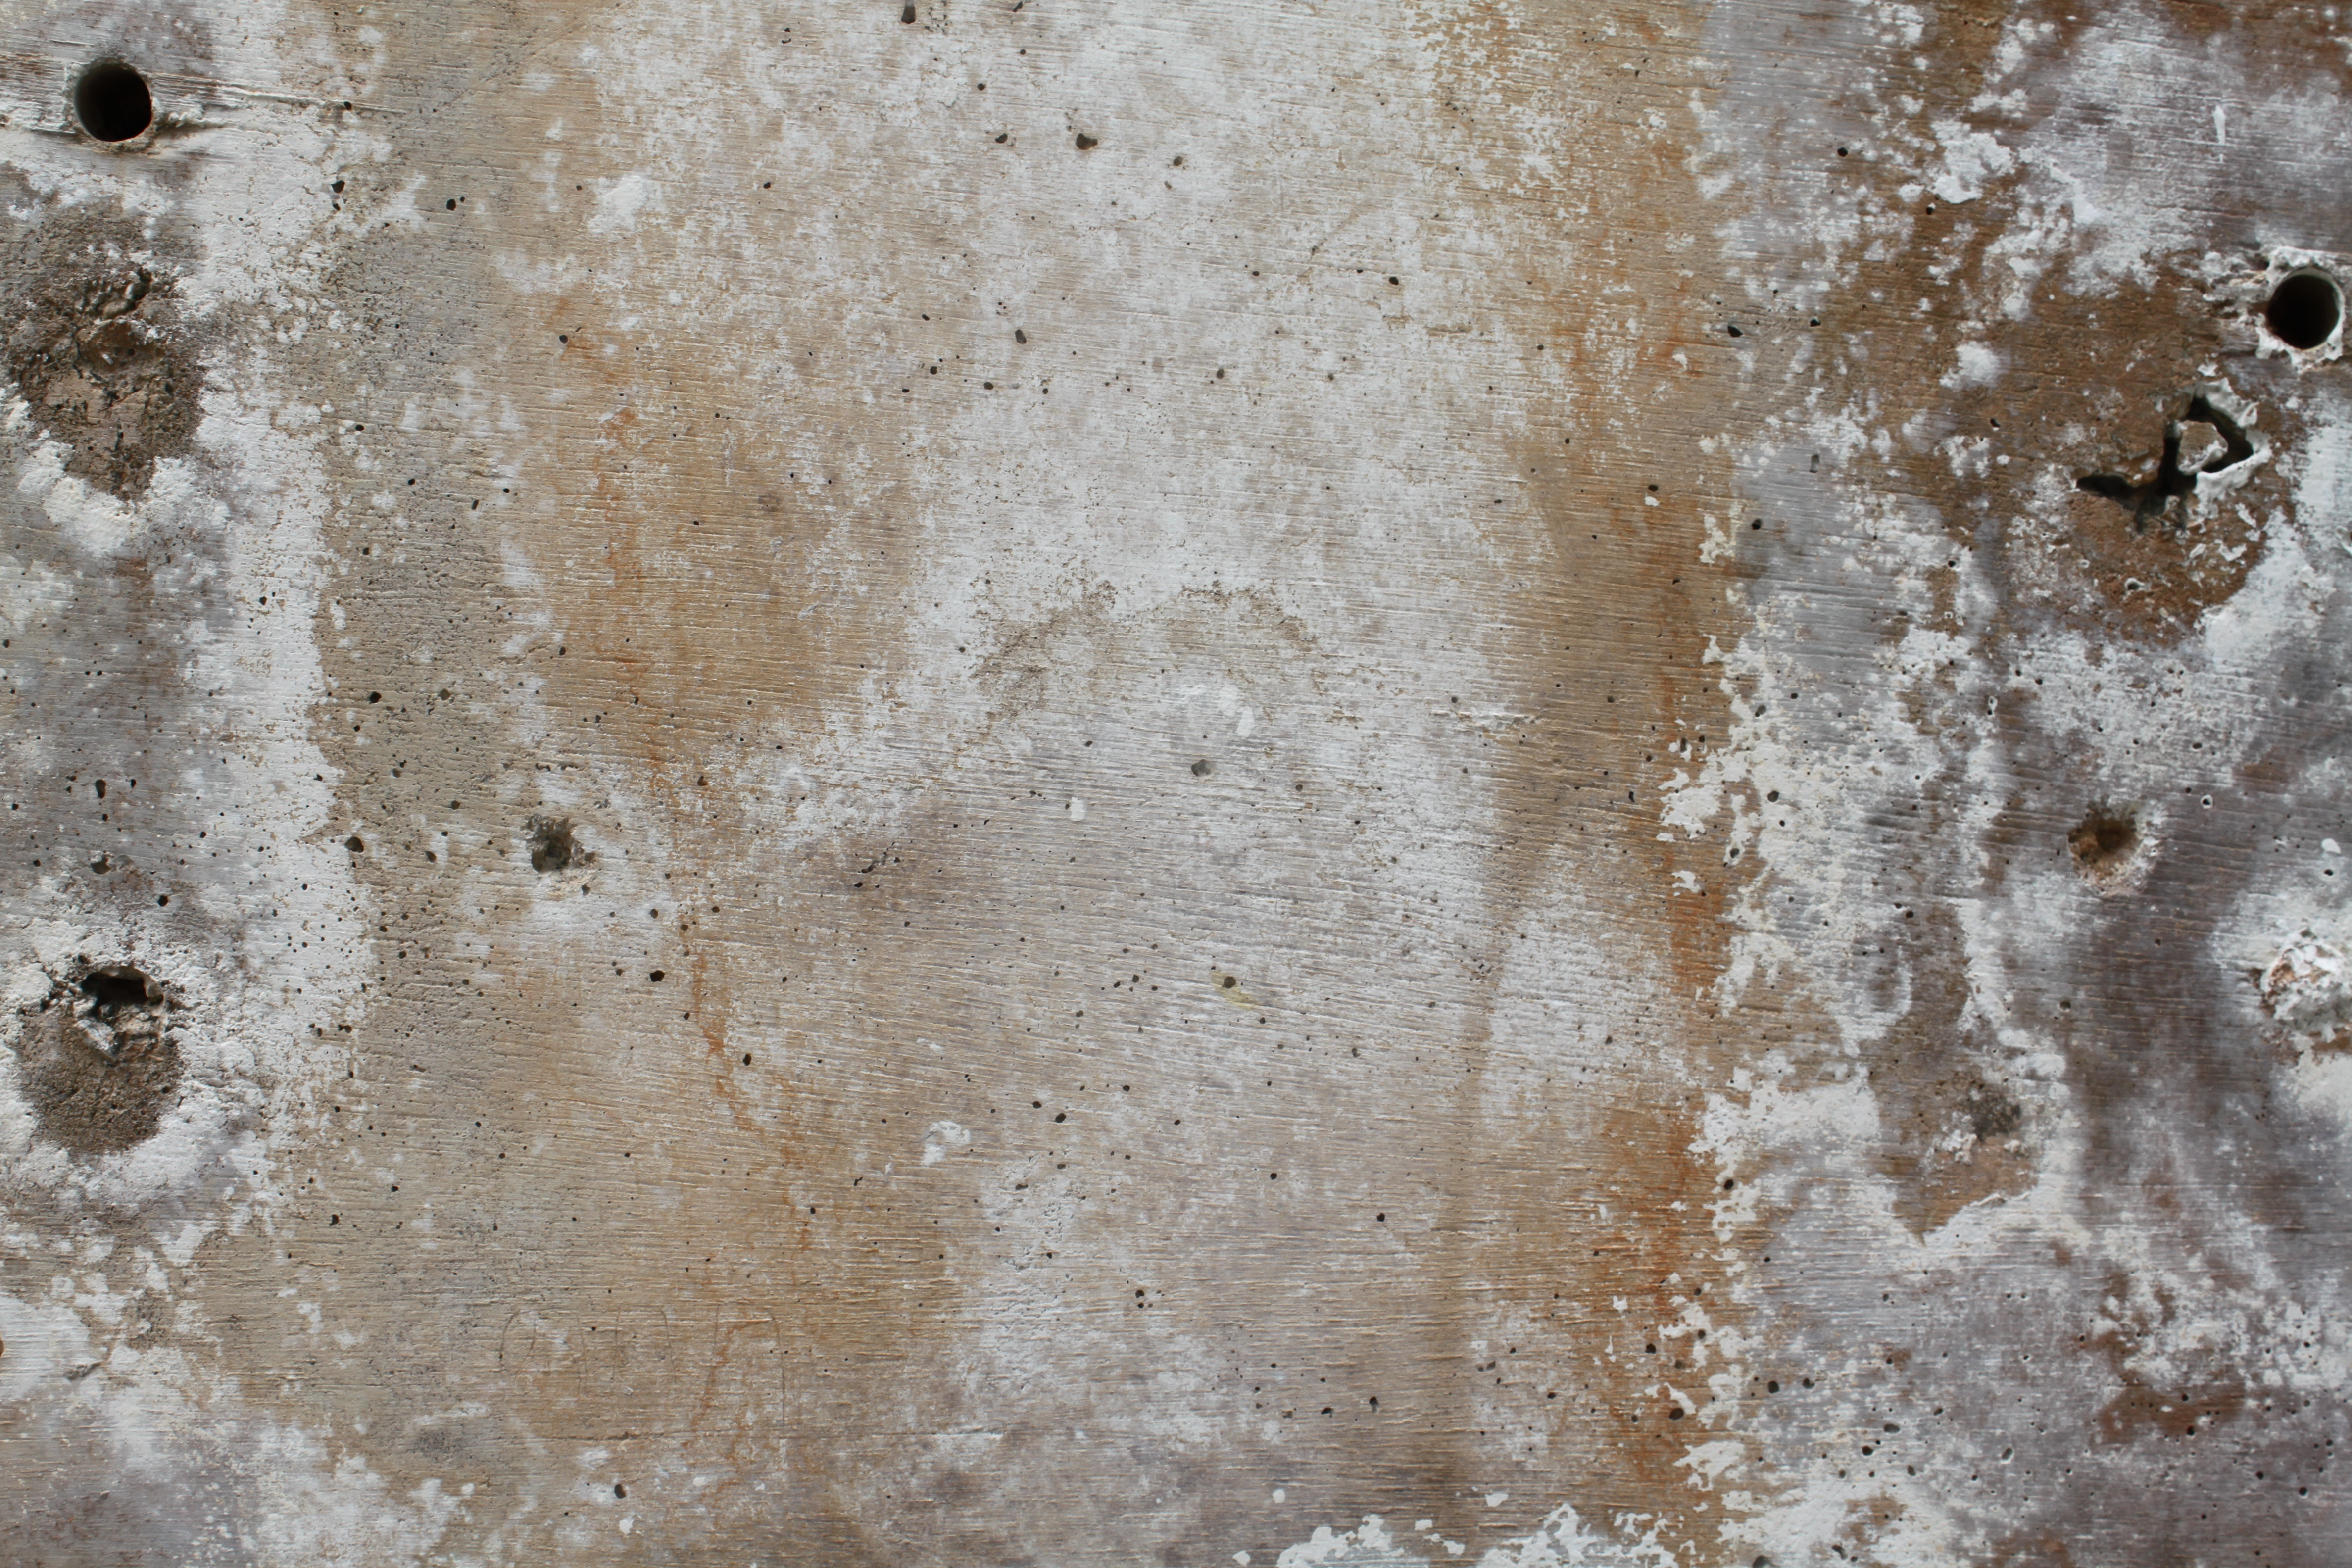 7 Free HQ Concrete Wall Textures | Downloadable